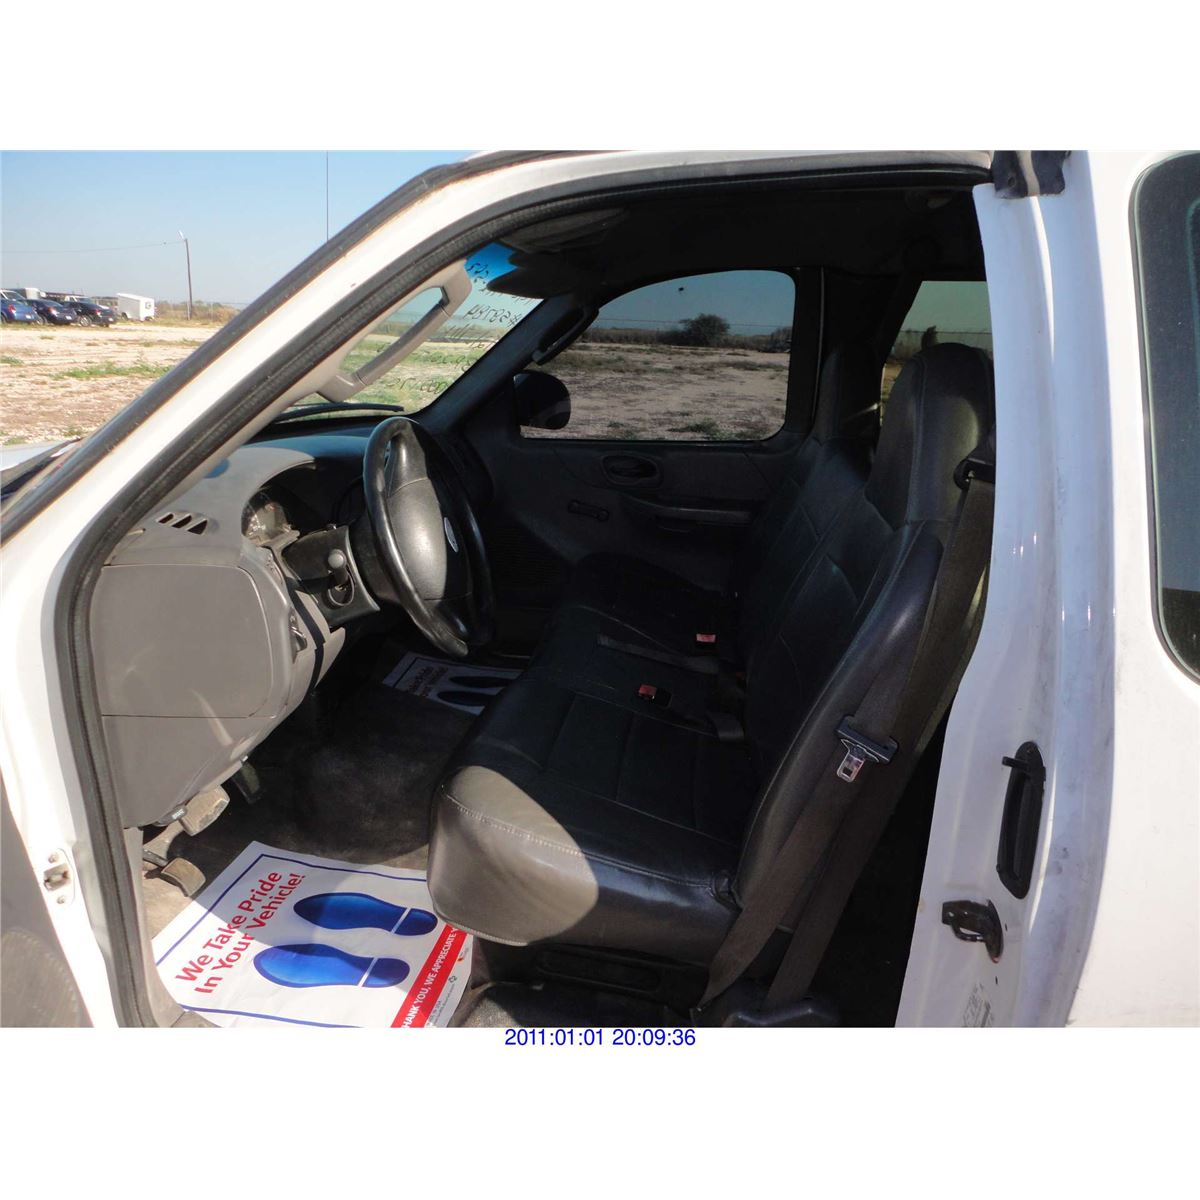 Salvage F150 In Texas Autos Post